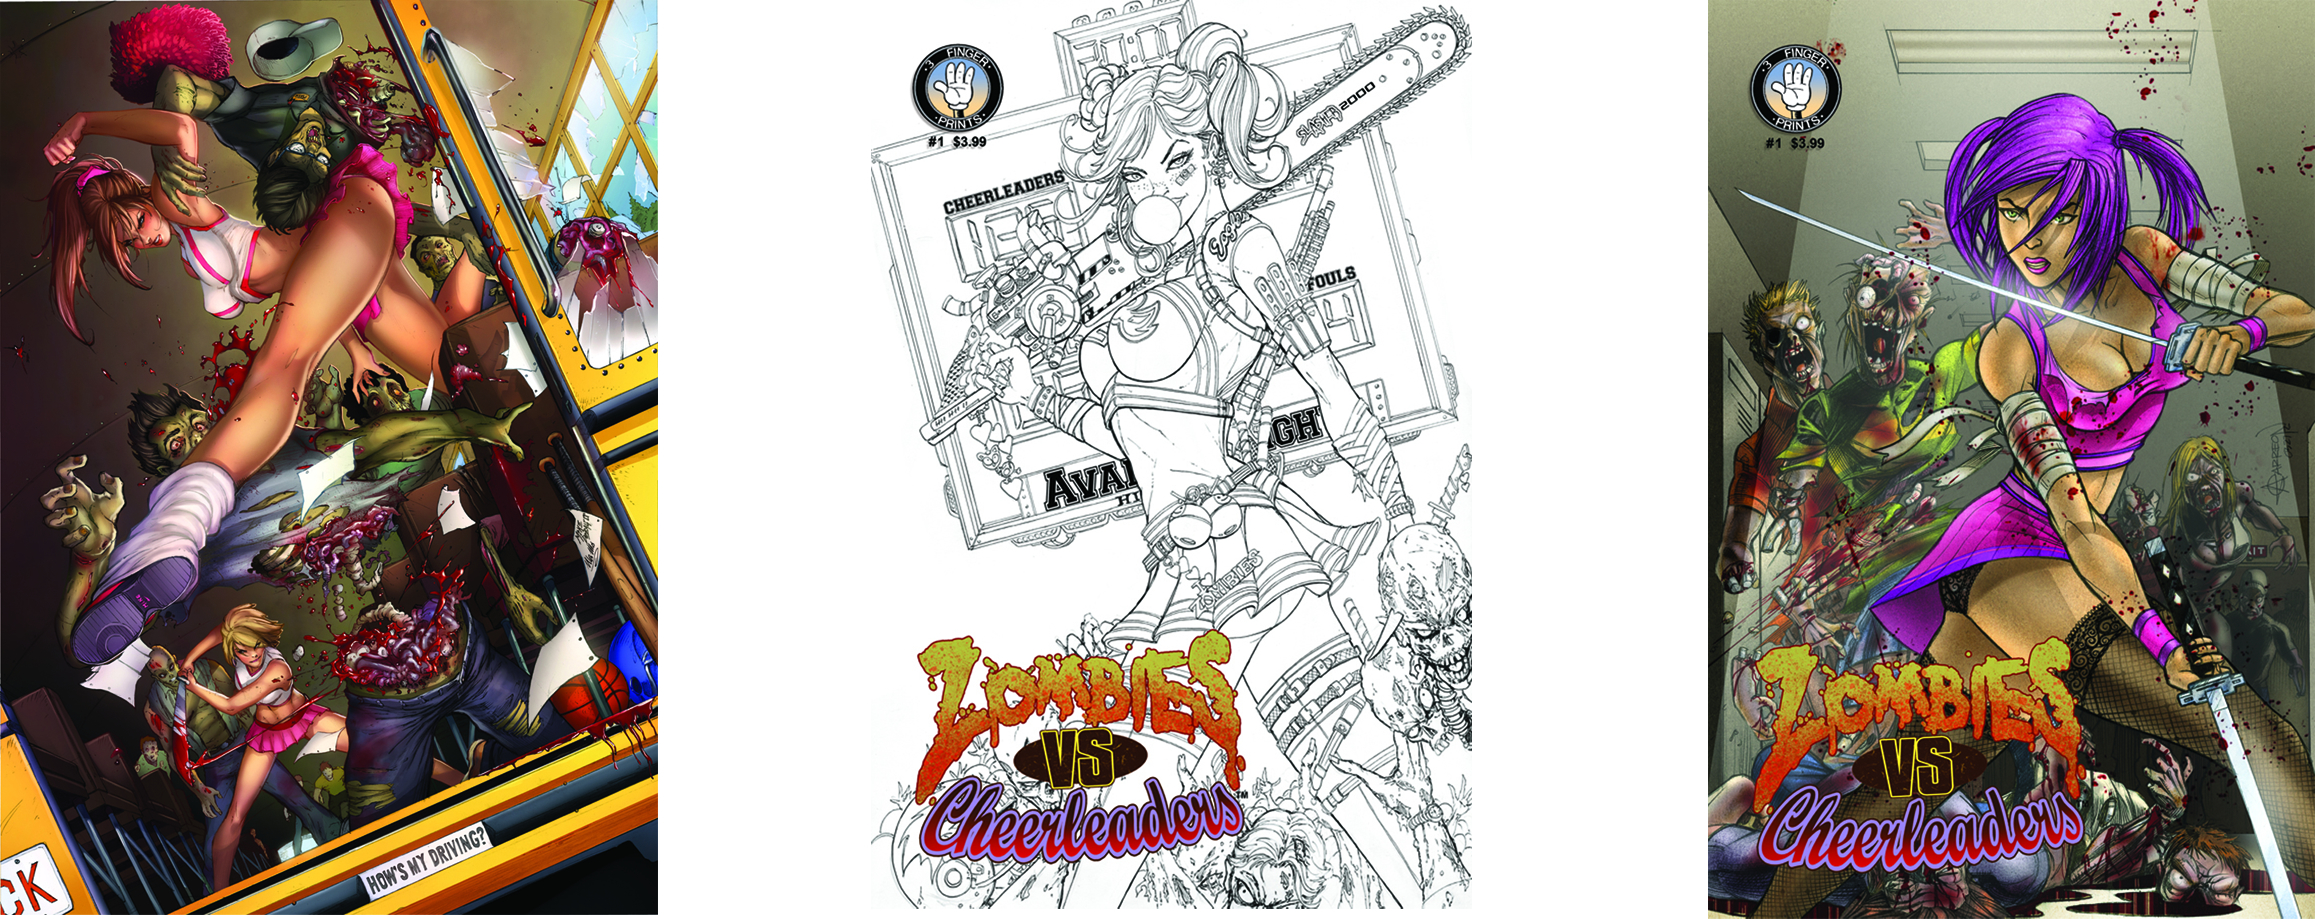 ZOMBIES VS CHEERLEADERS VOL 2 #1